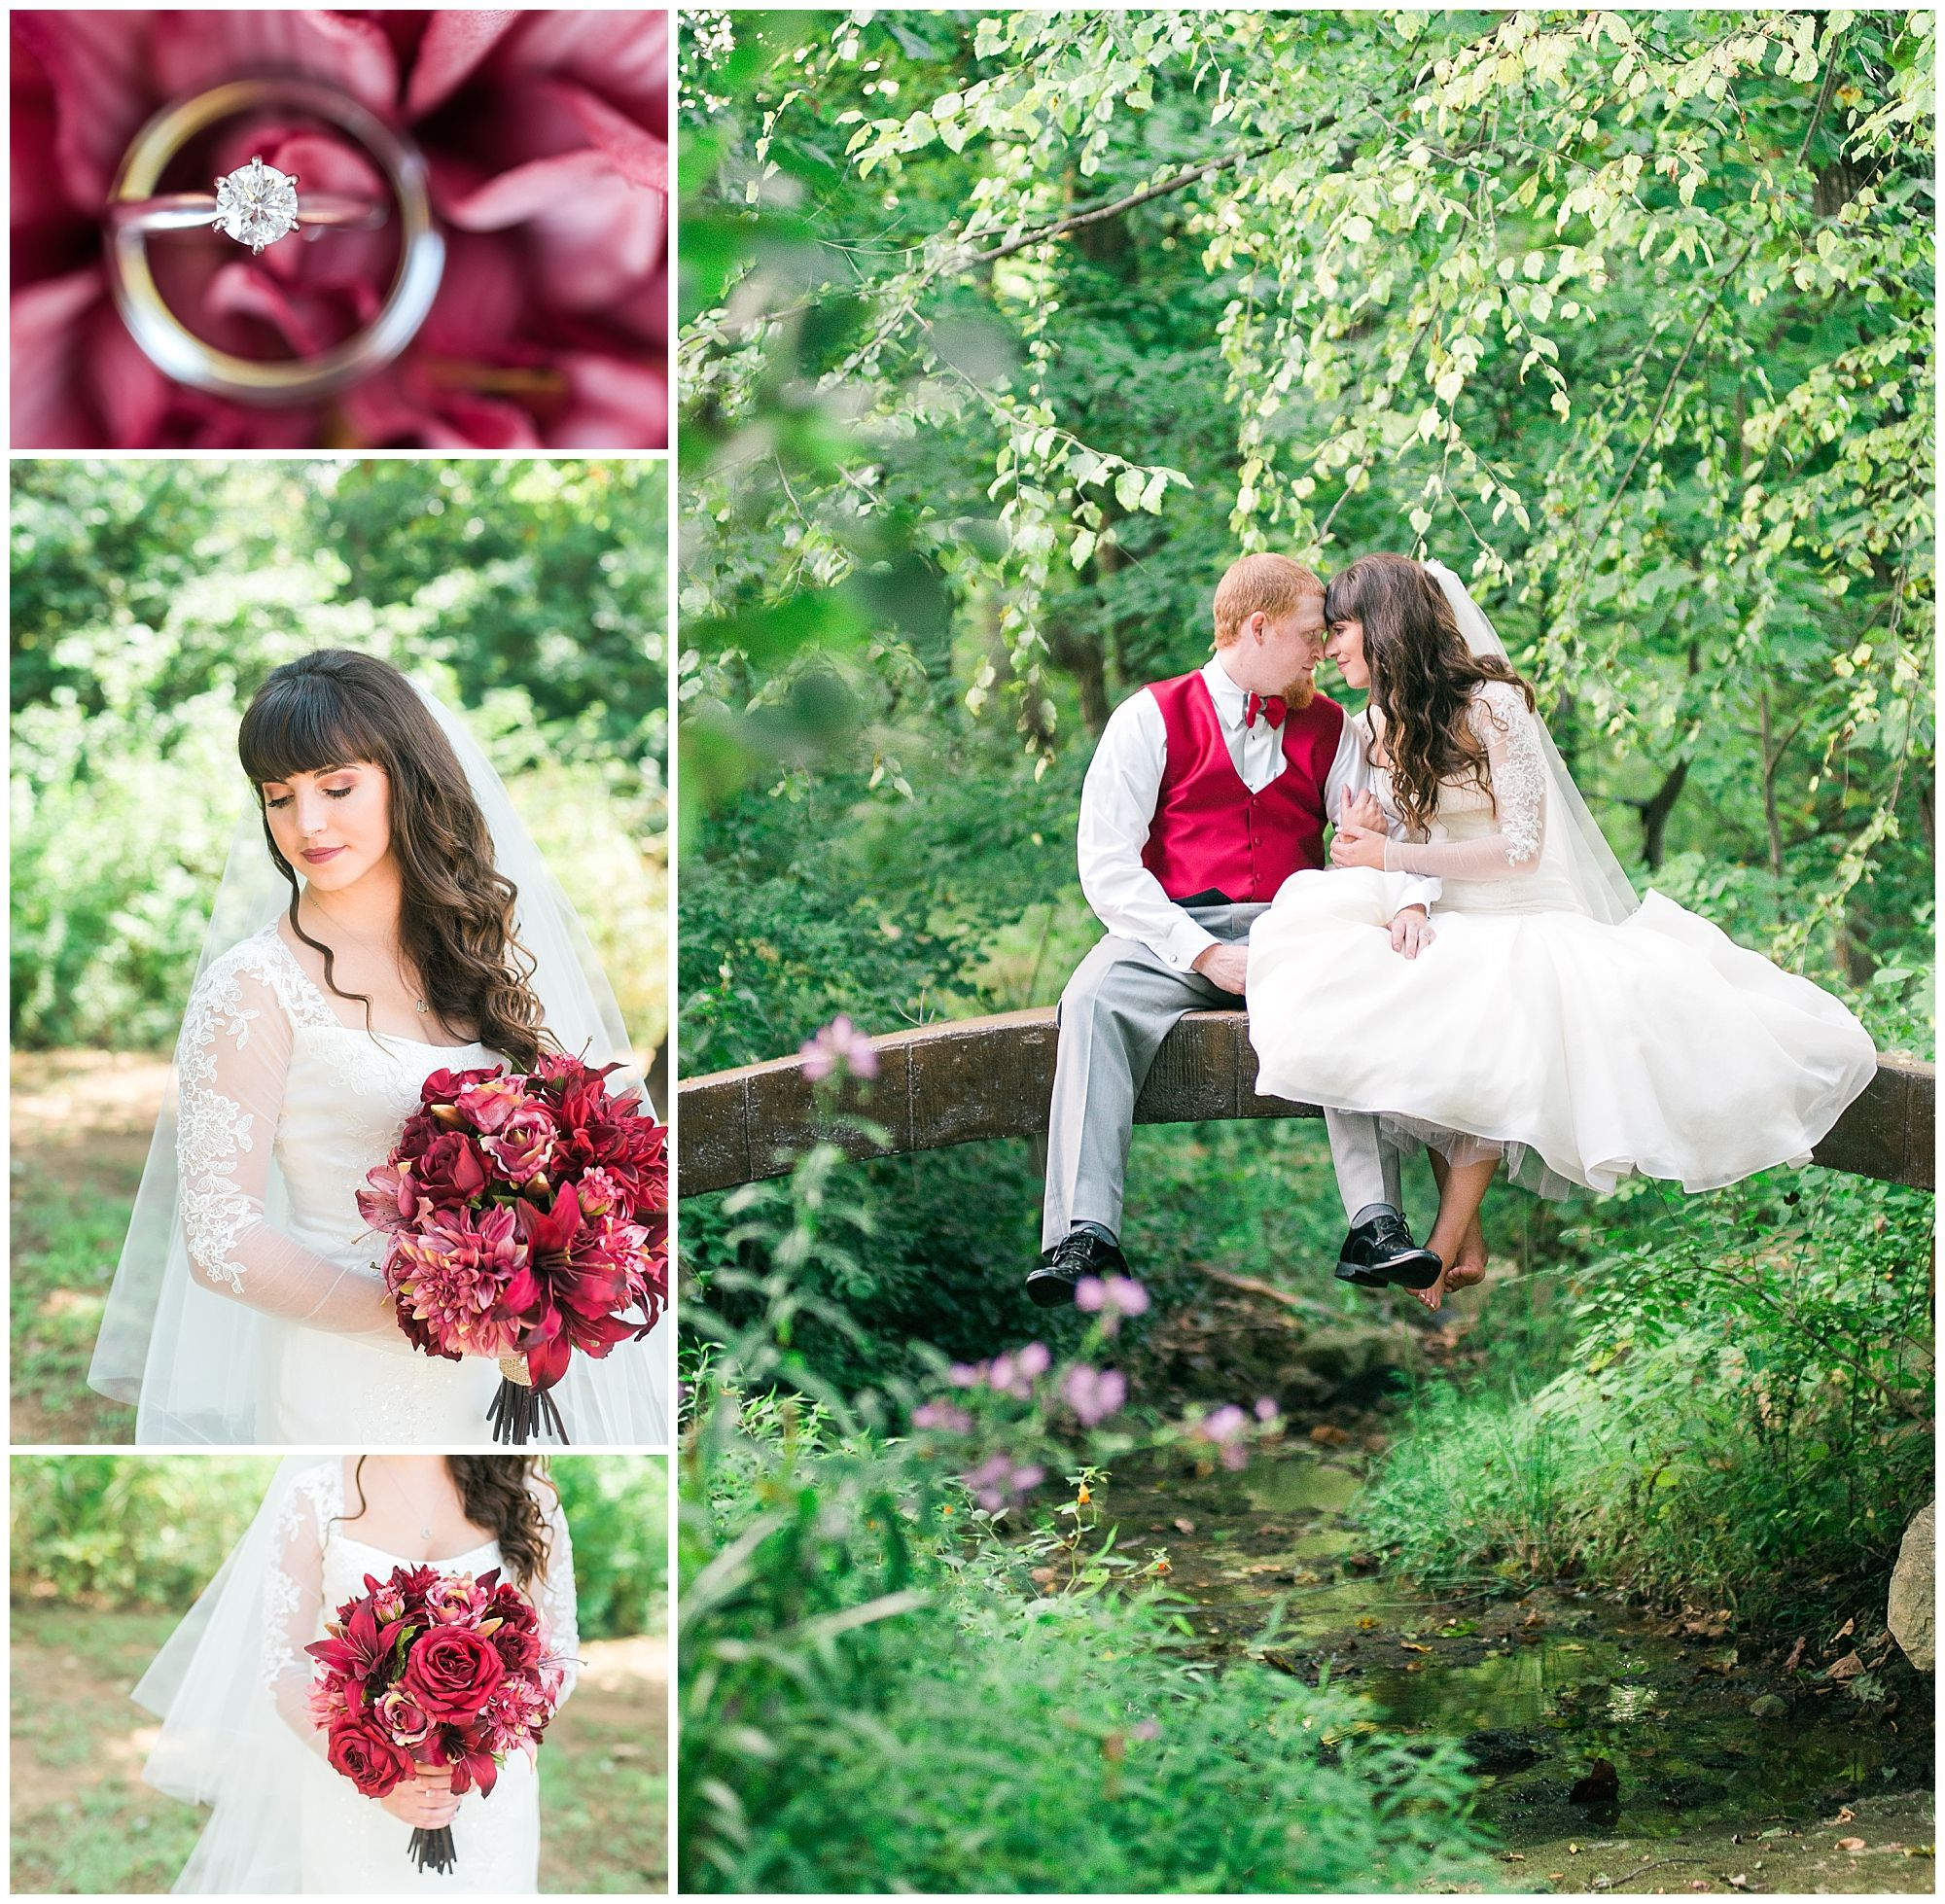 Burgundy wedding, red wedding, maroon wedding, outdoor wedding, backyard wedding, Bardstown, KY, long sleeved wedding dress, silk flower bouquet, bridge photos, Keith & Melissa Photography, Lexington wedding photographers